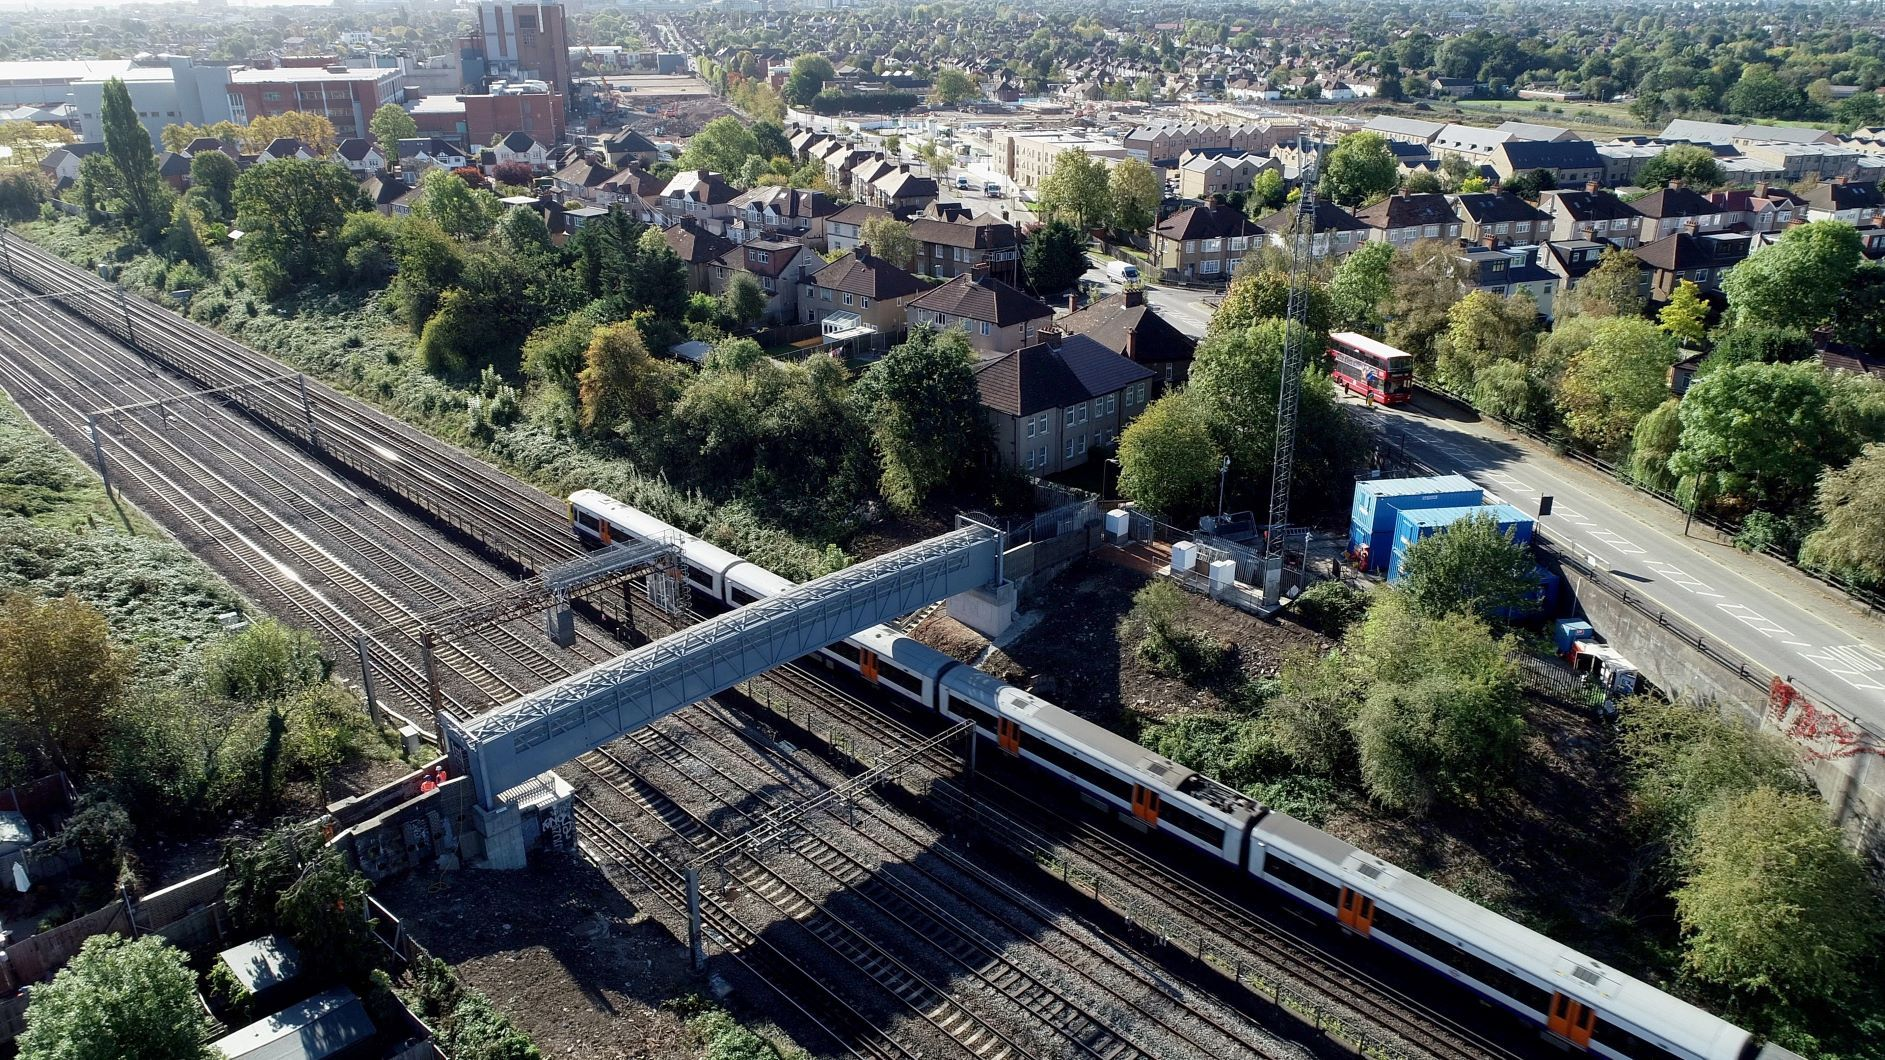 NETWORK RAIL: Story Contracting has won a £38m contract